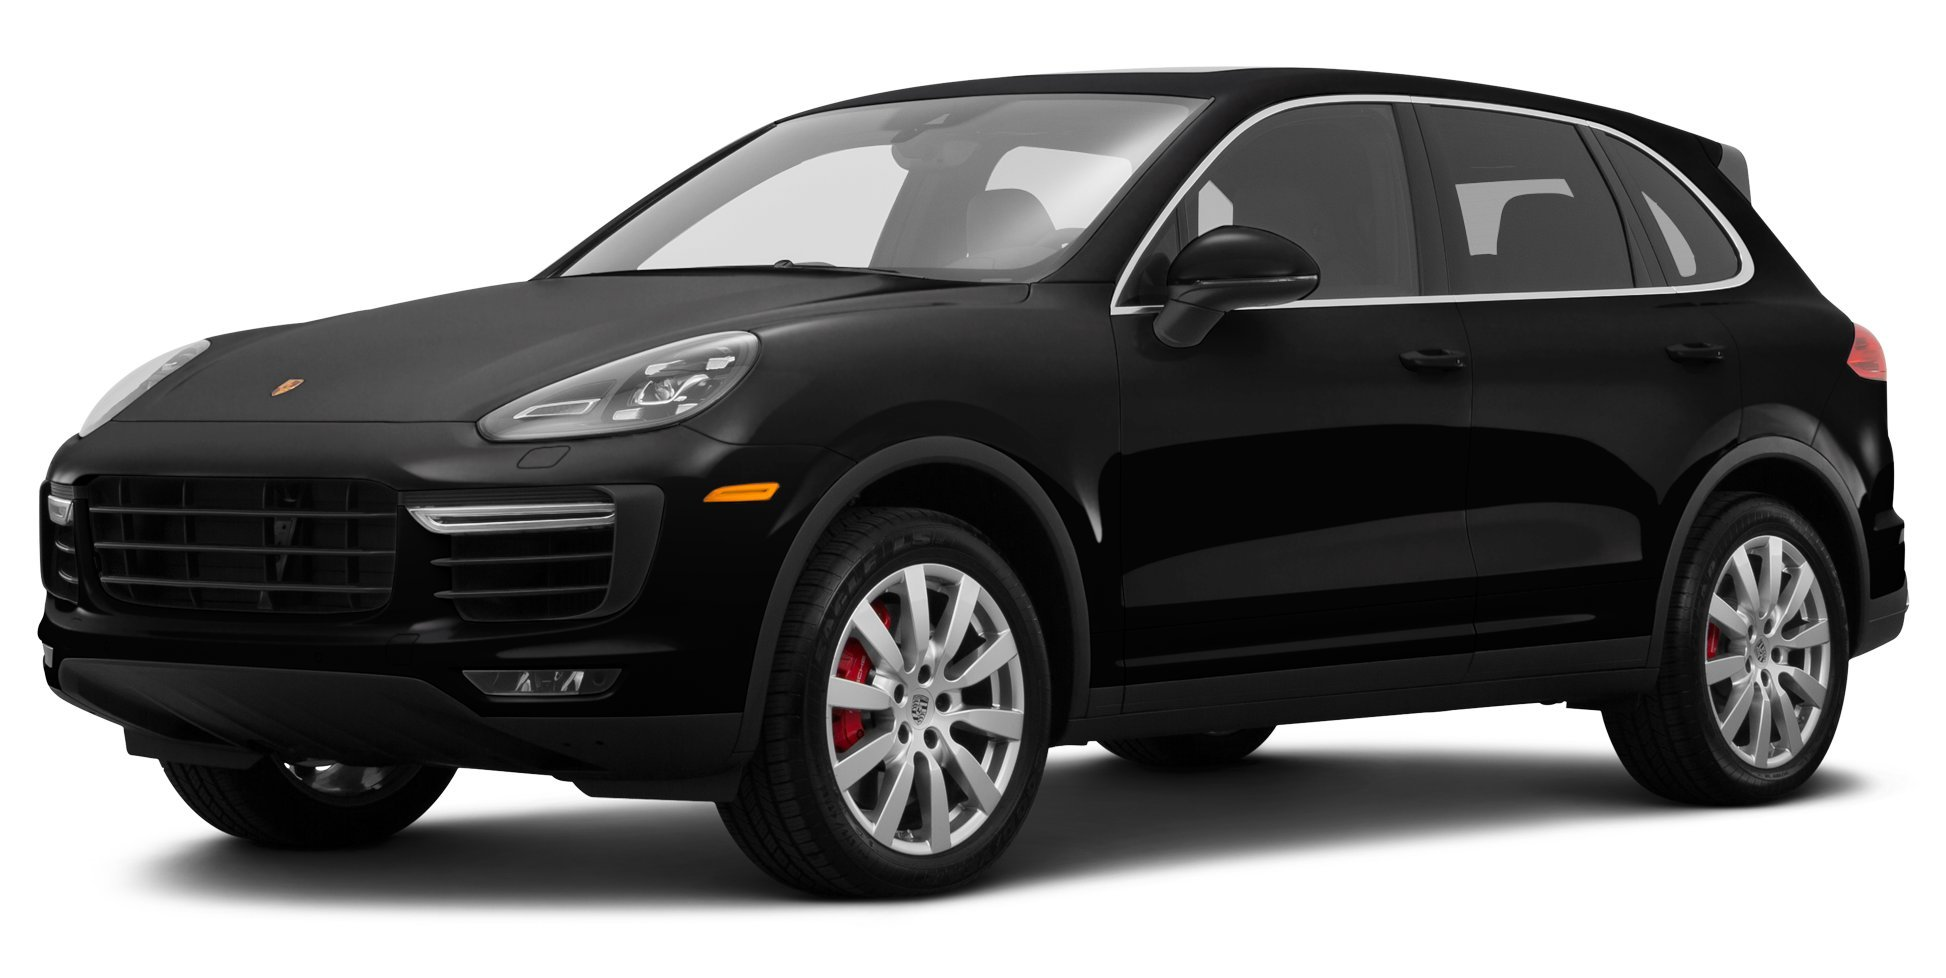 ... 2015 Porsche Cayenne Turbo, All Wheel Drive 4-Door ...